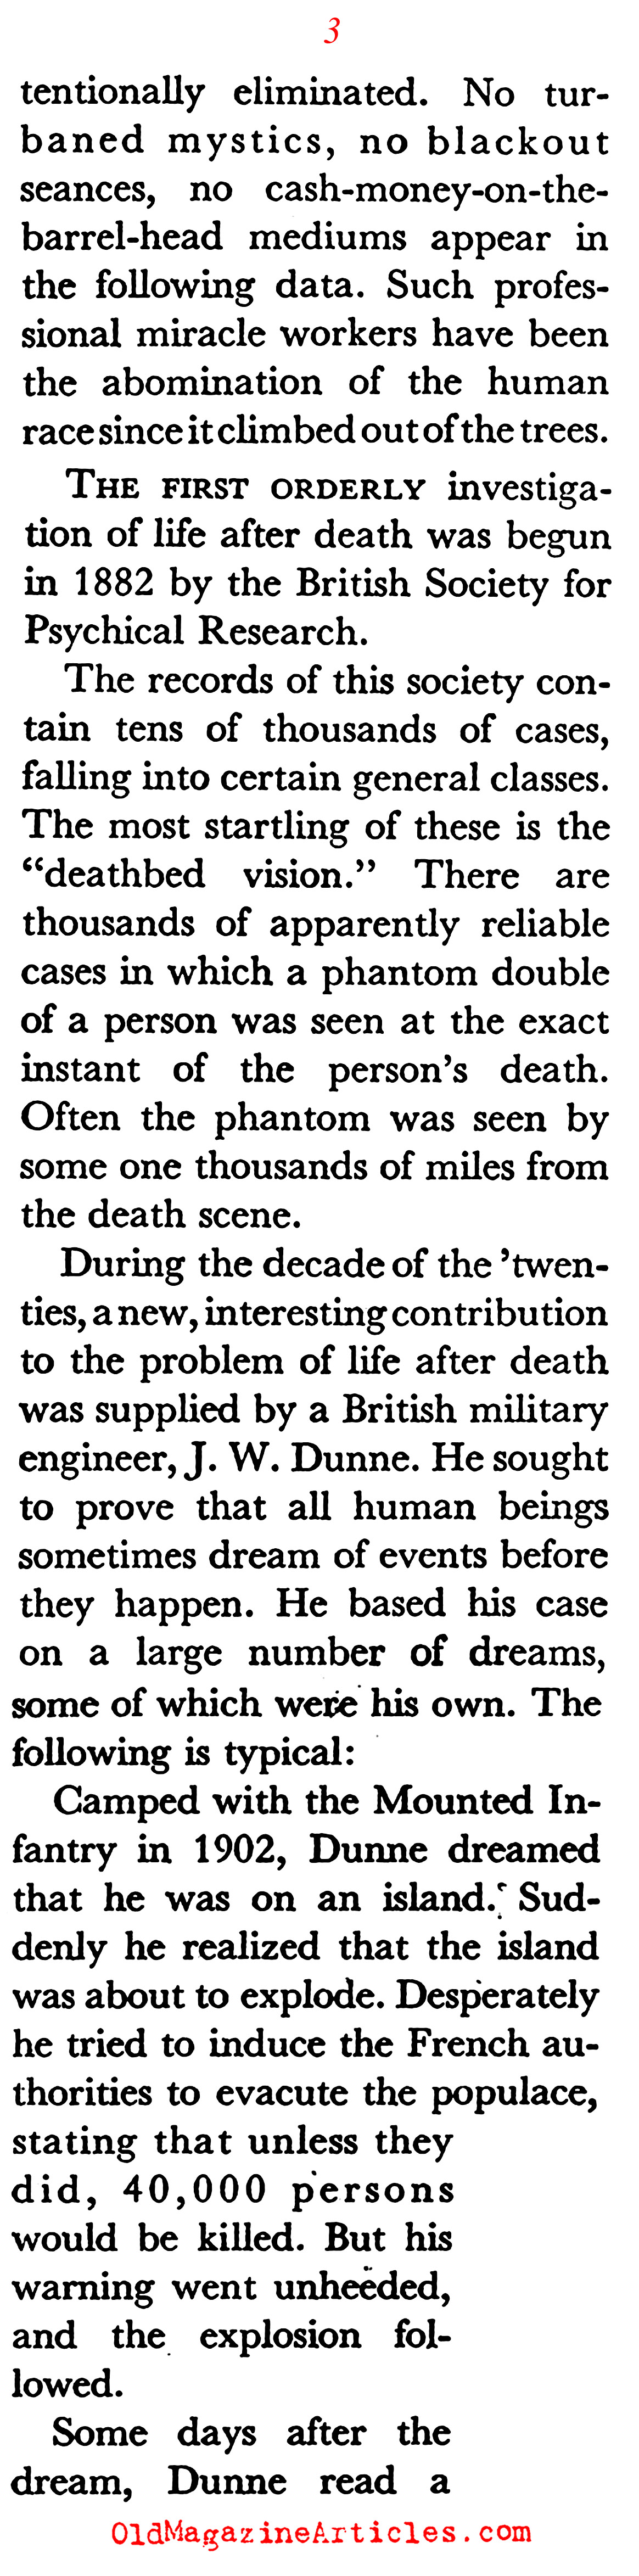 Comprehending the Afterlife (Coronet Magazine, 1941)